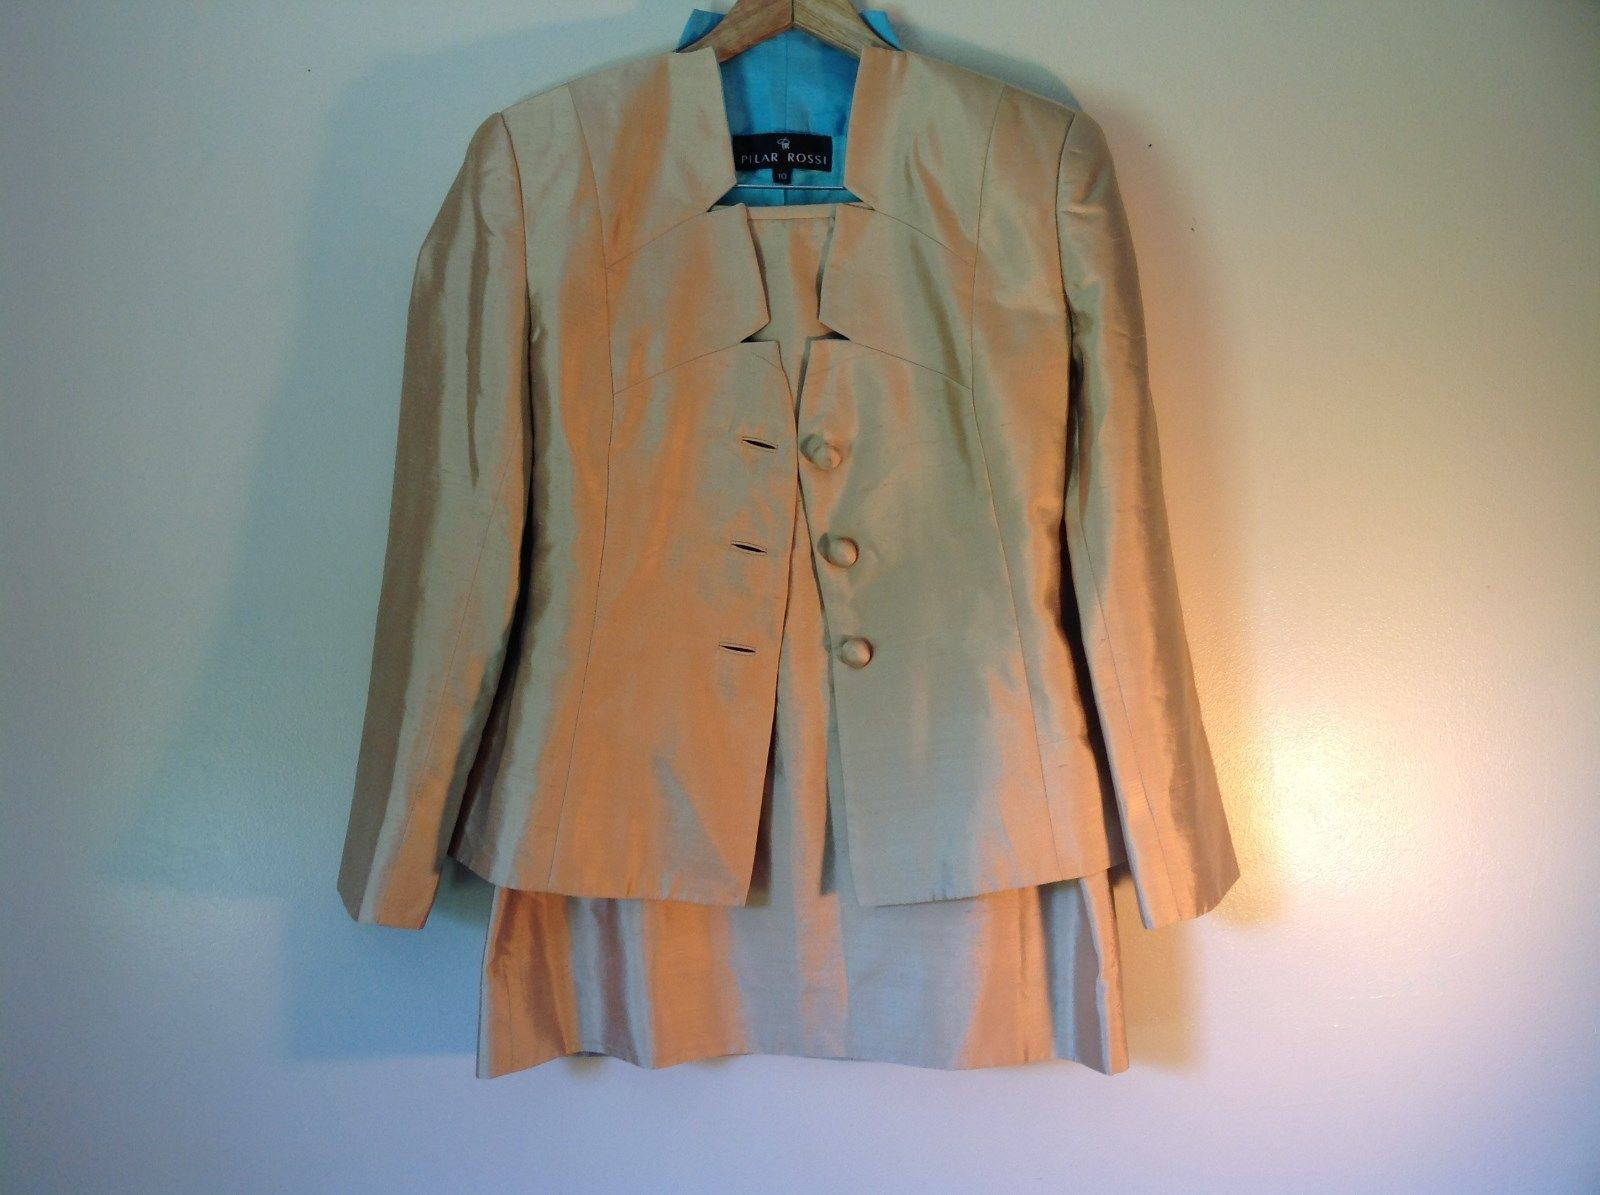 Pilar Rossi Size 10 Light Brown Skirt and Blazer Suit 3 Button Closure on Jacket